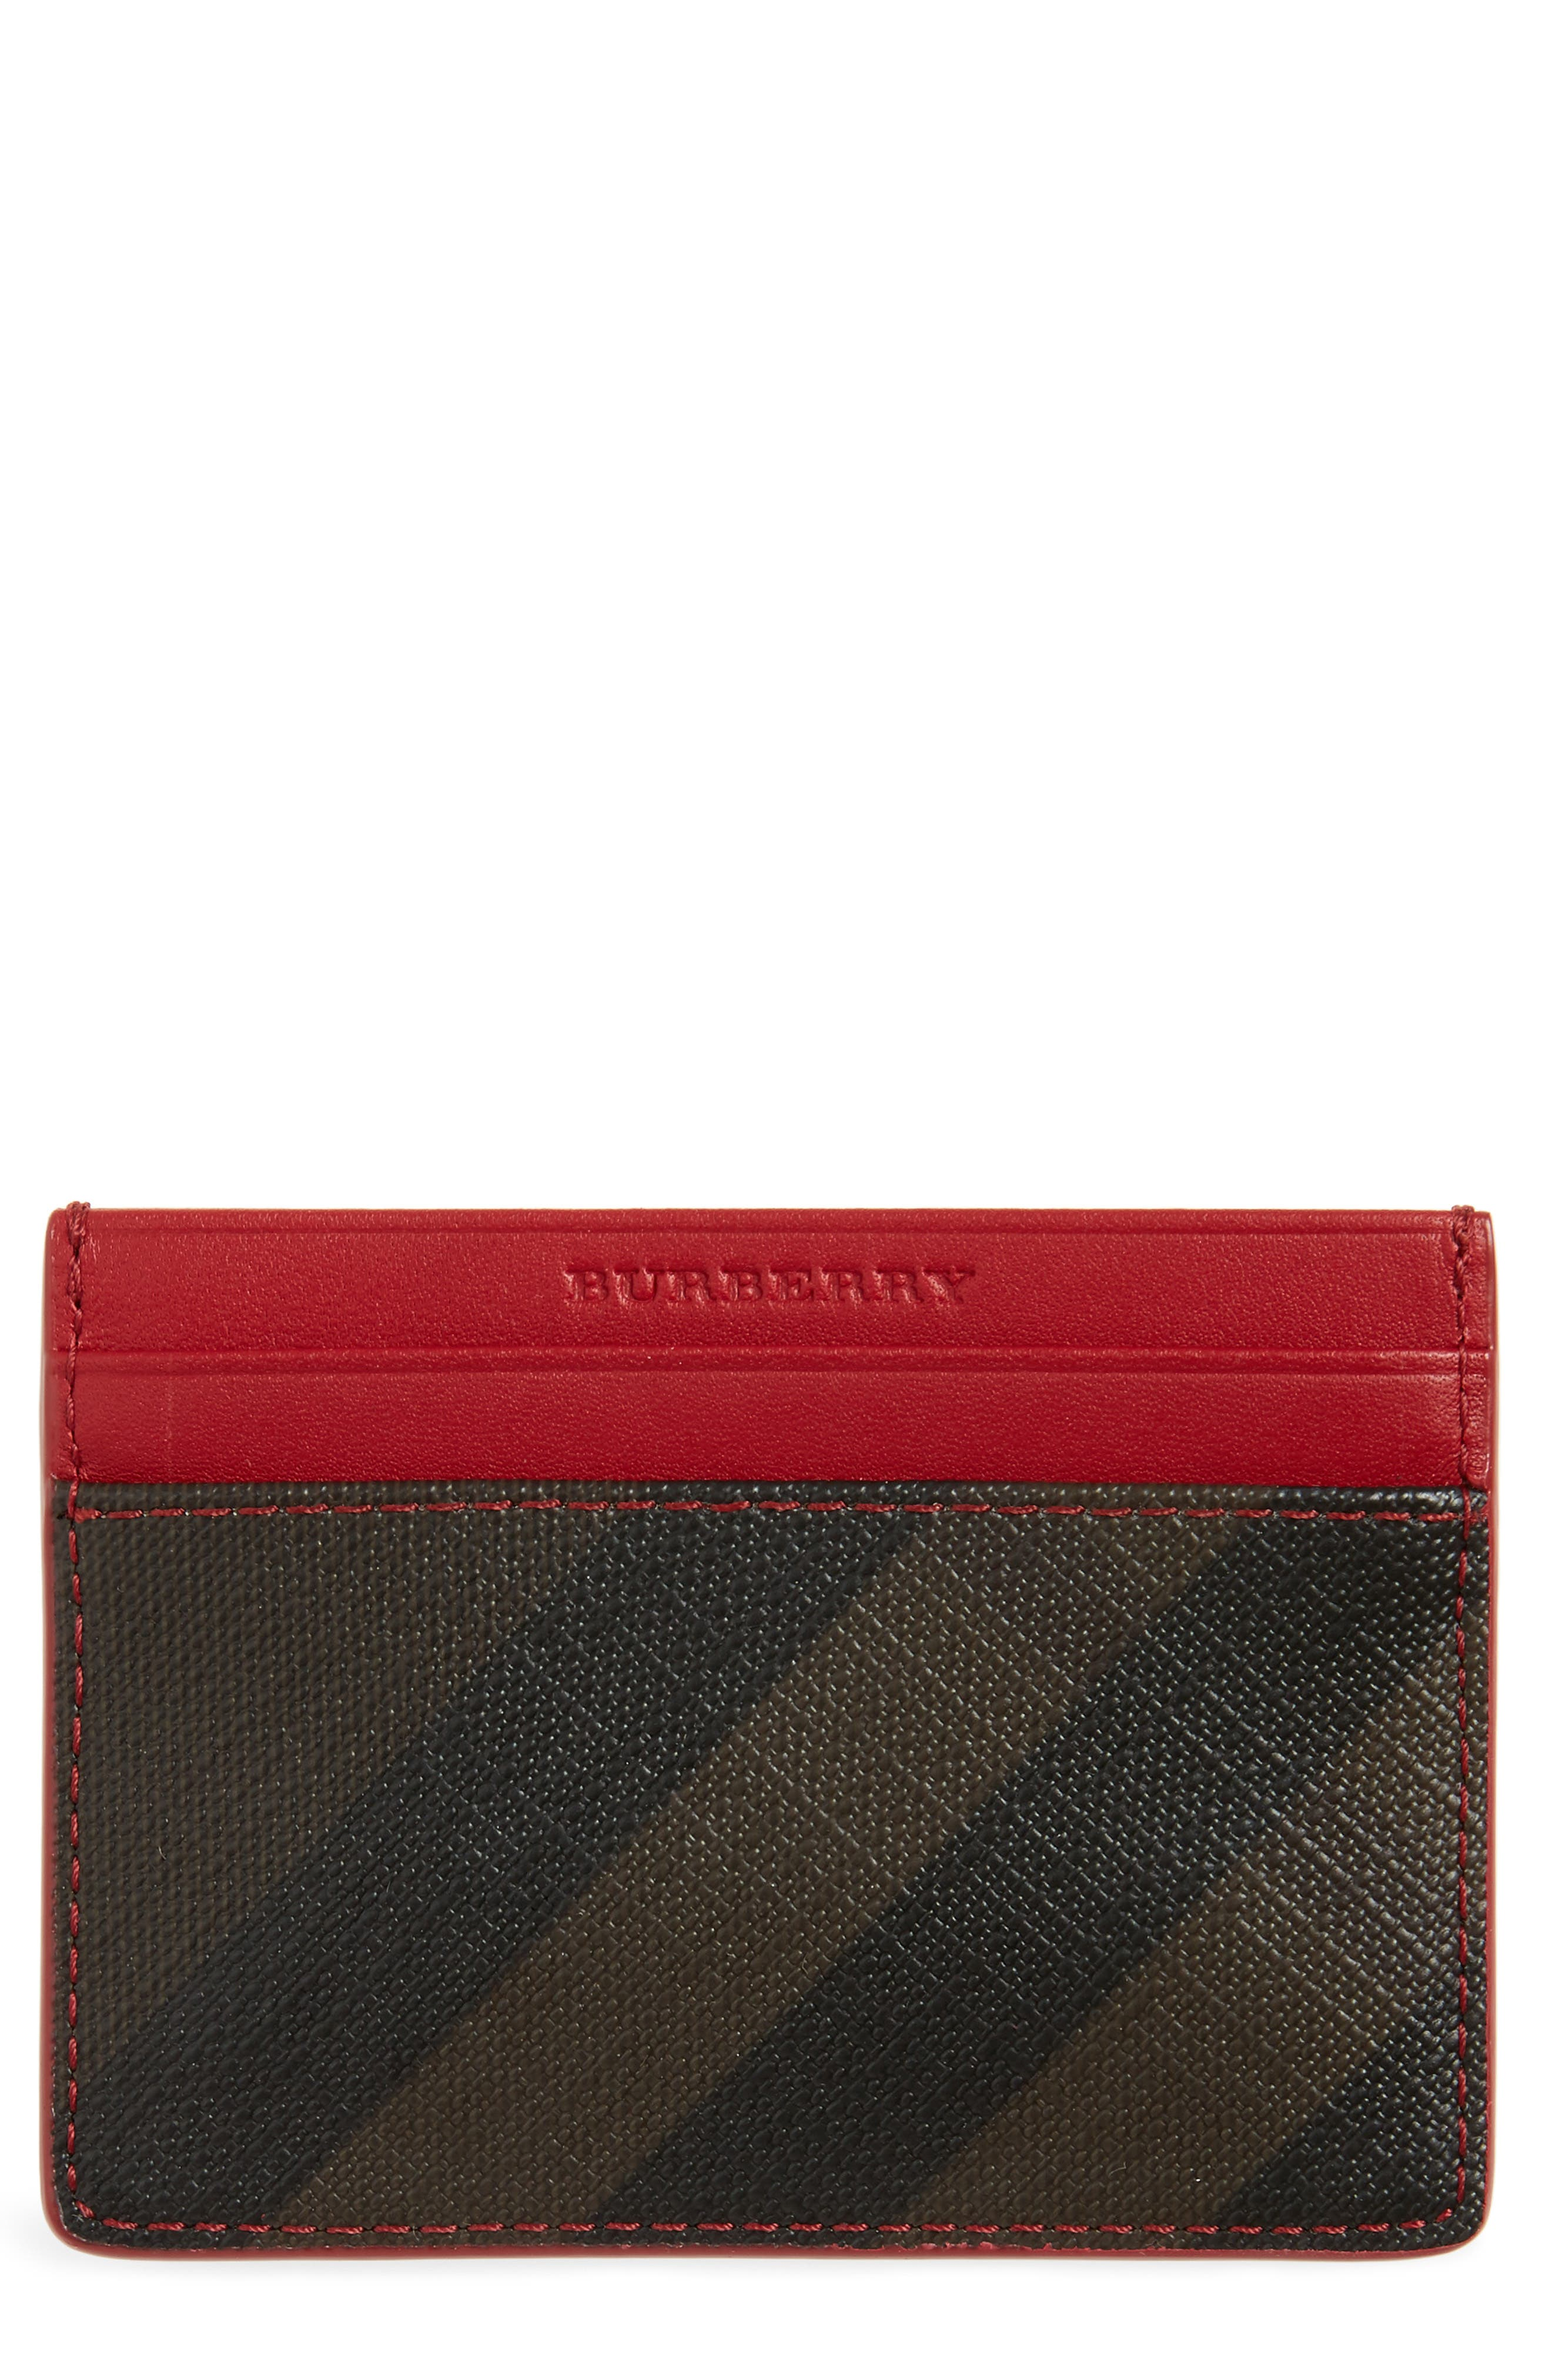 Check Faux Leather Card Case,                         Main,                         color, 207